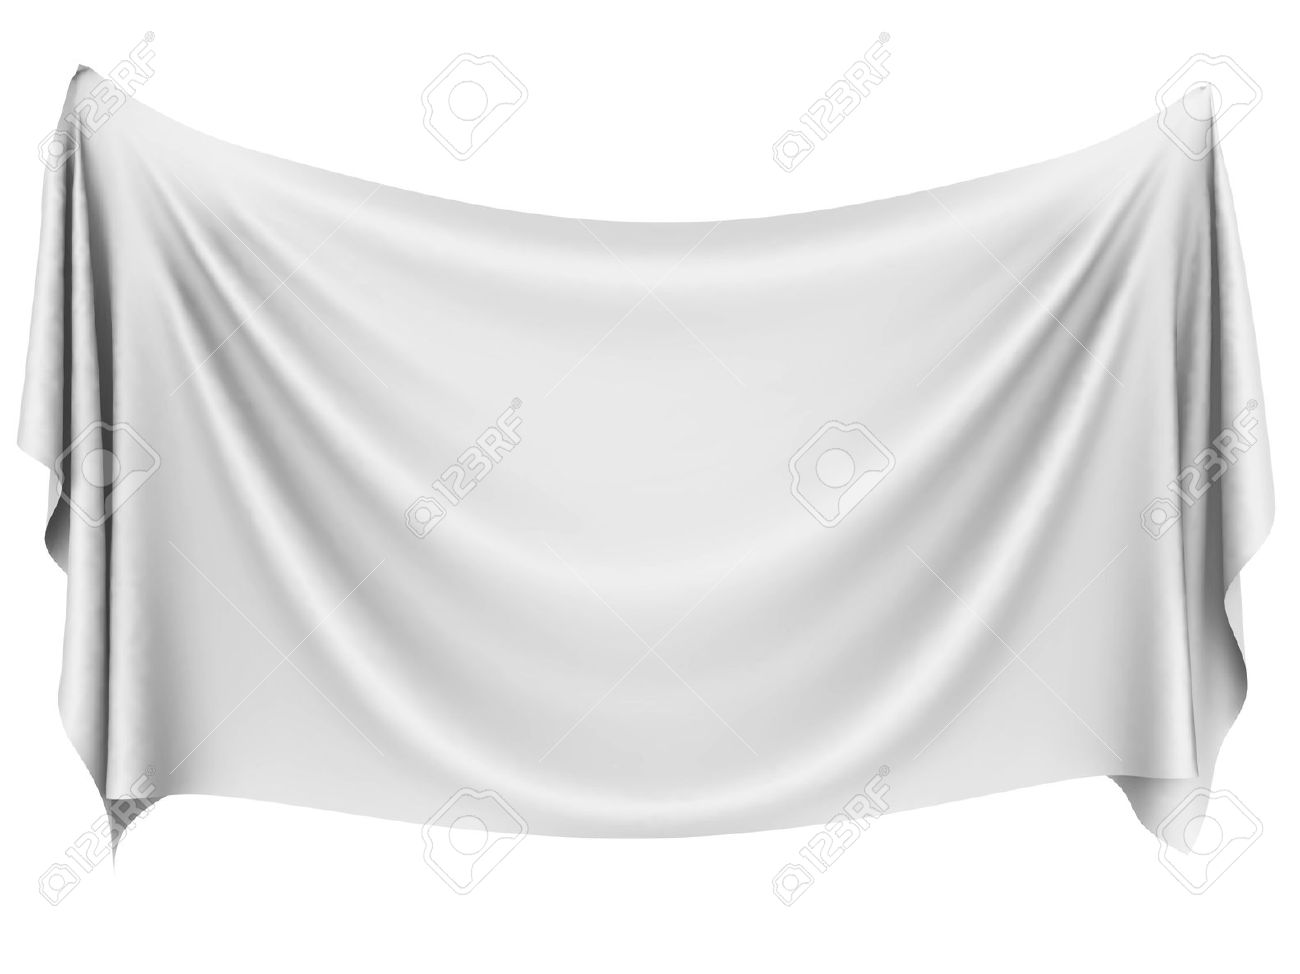 blank white hanging cloth